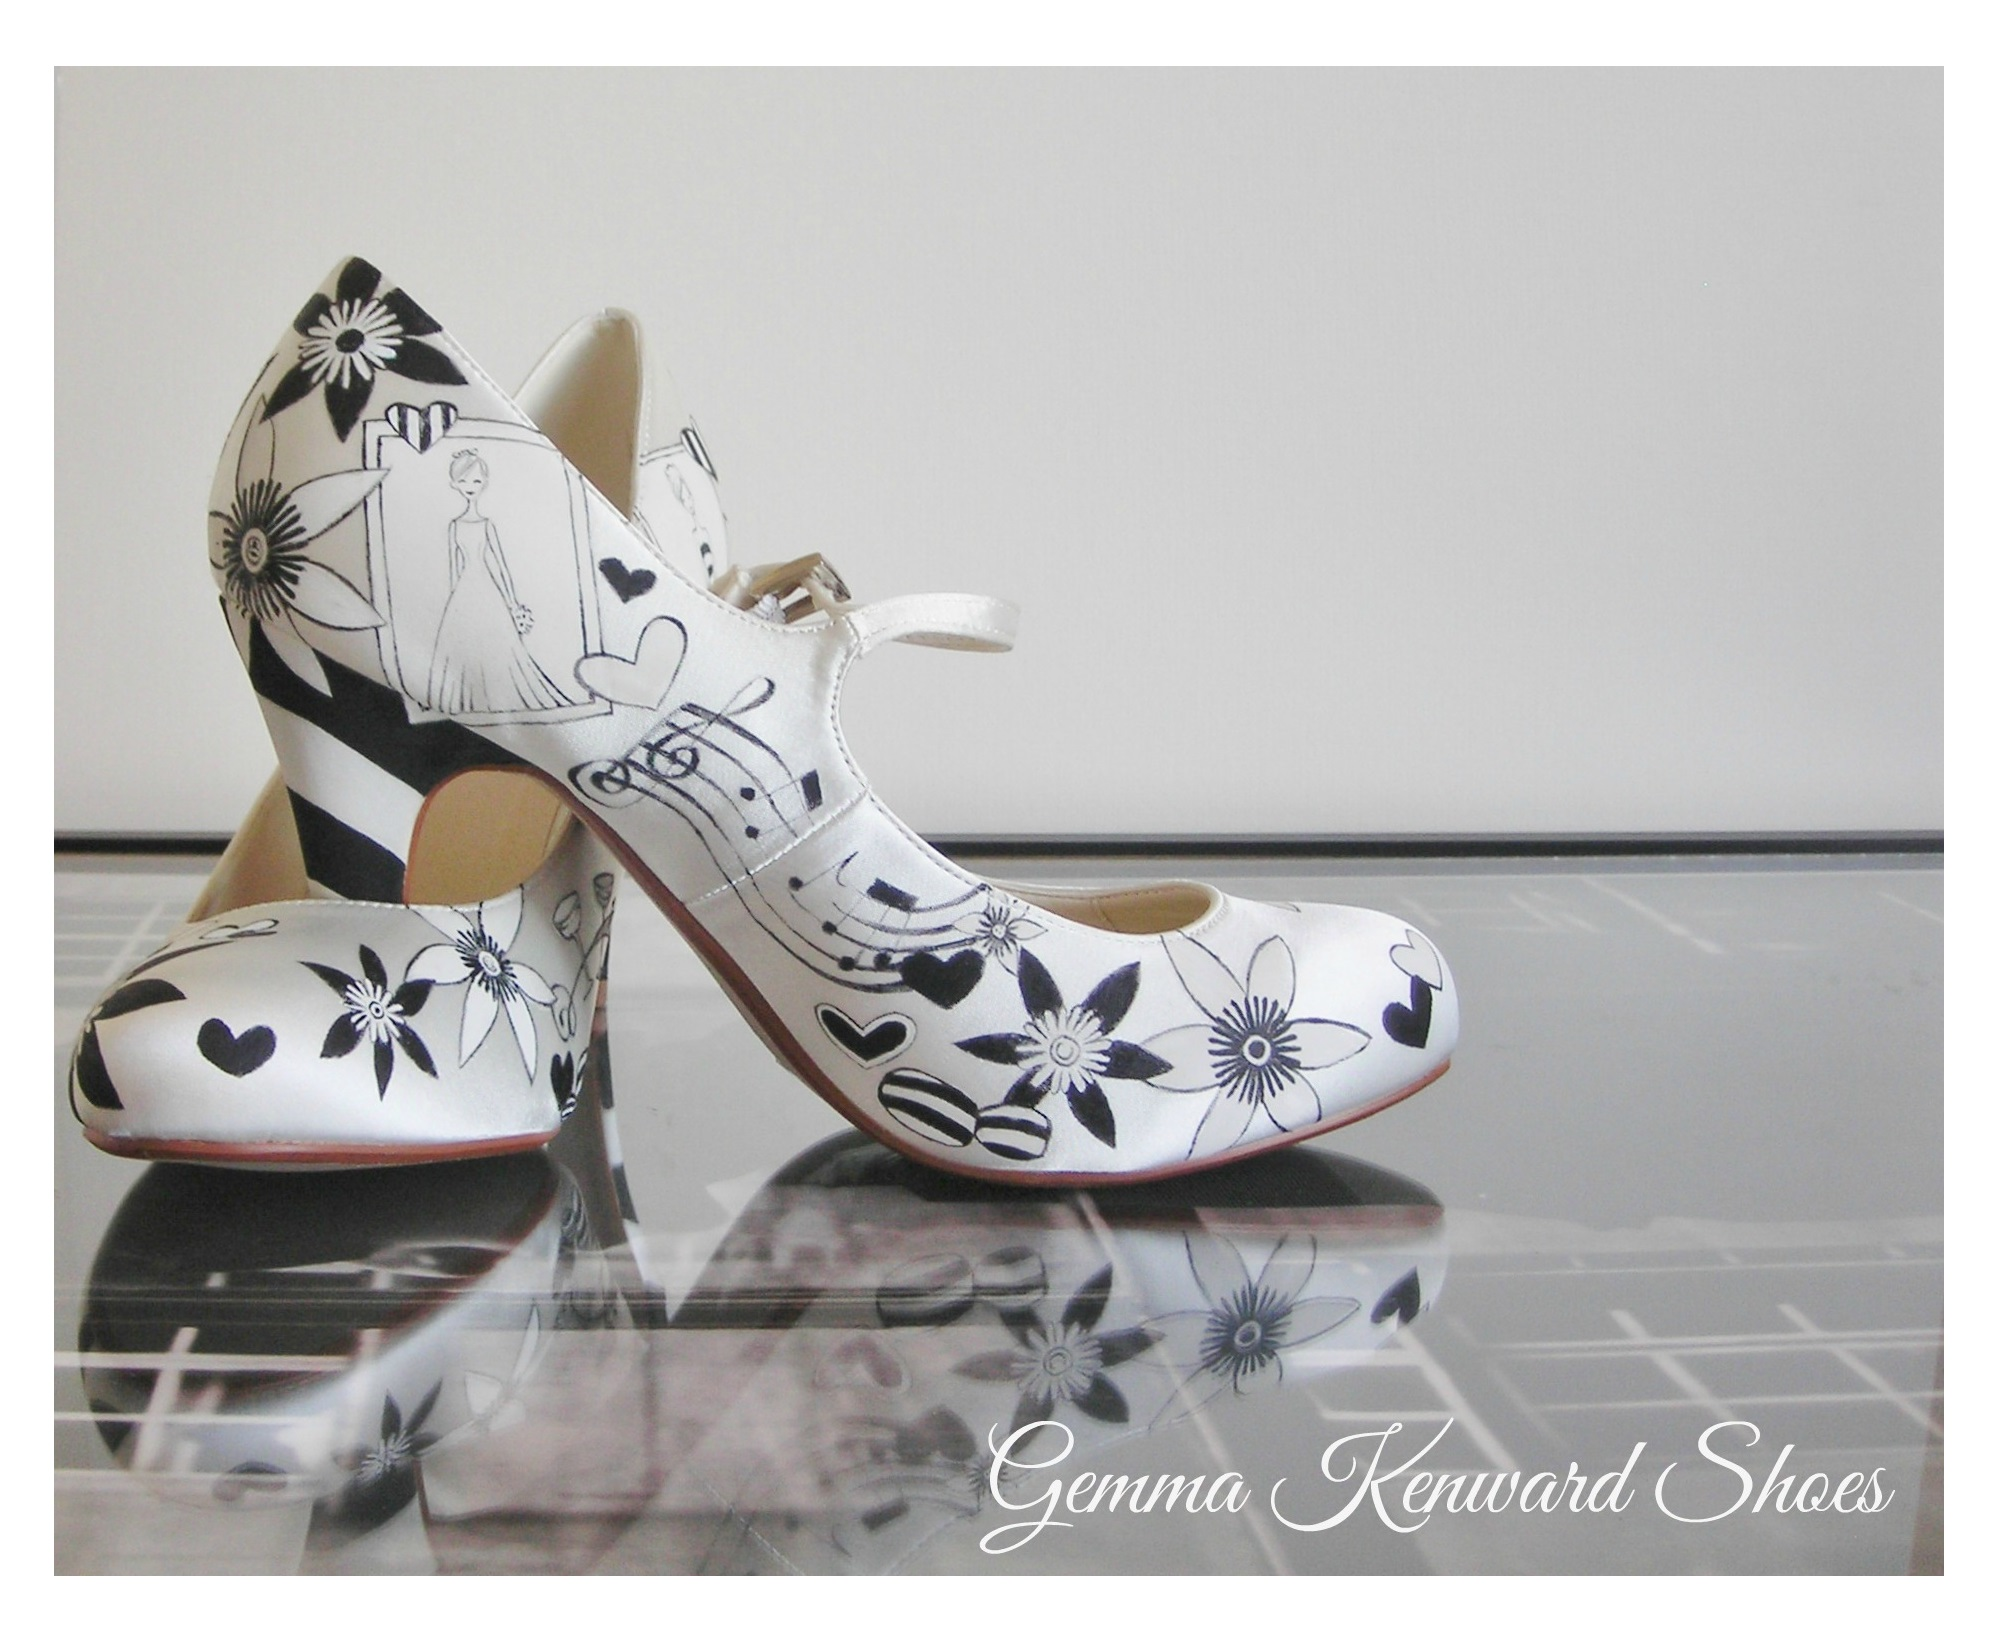 Hand painted wedding shoes with humbug sweets, musical notes and flowers - can you spy the gorgeous brides wedding dress?